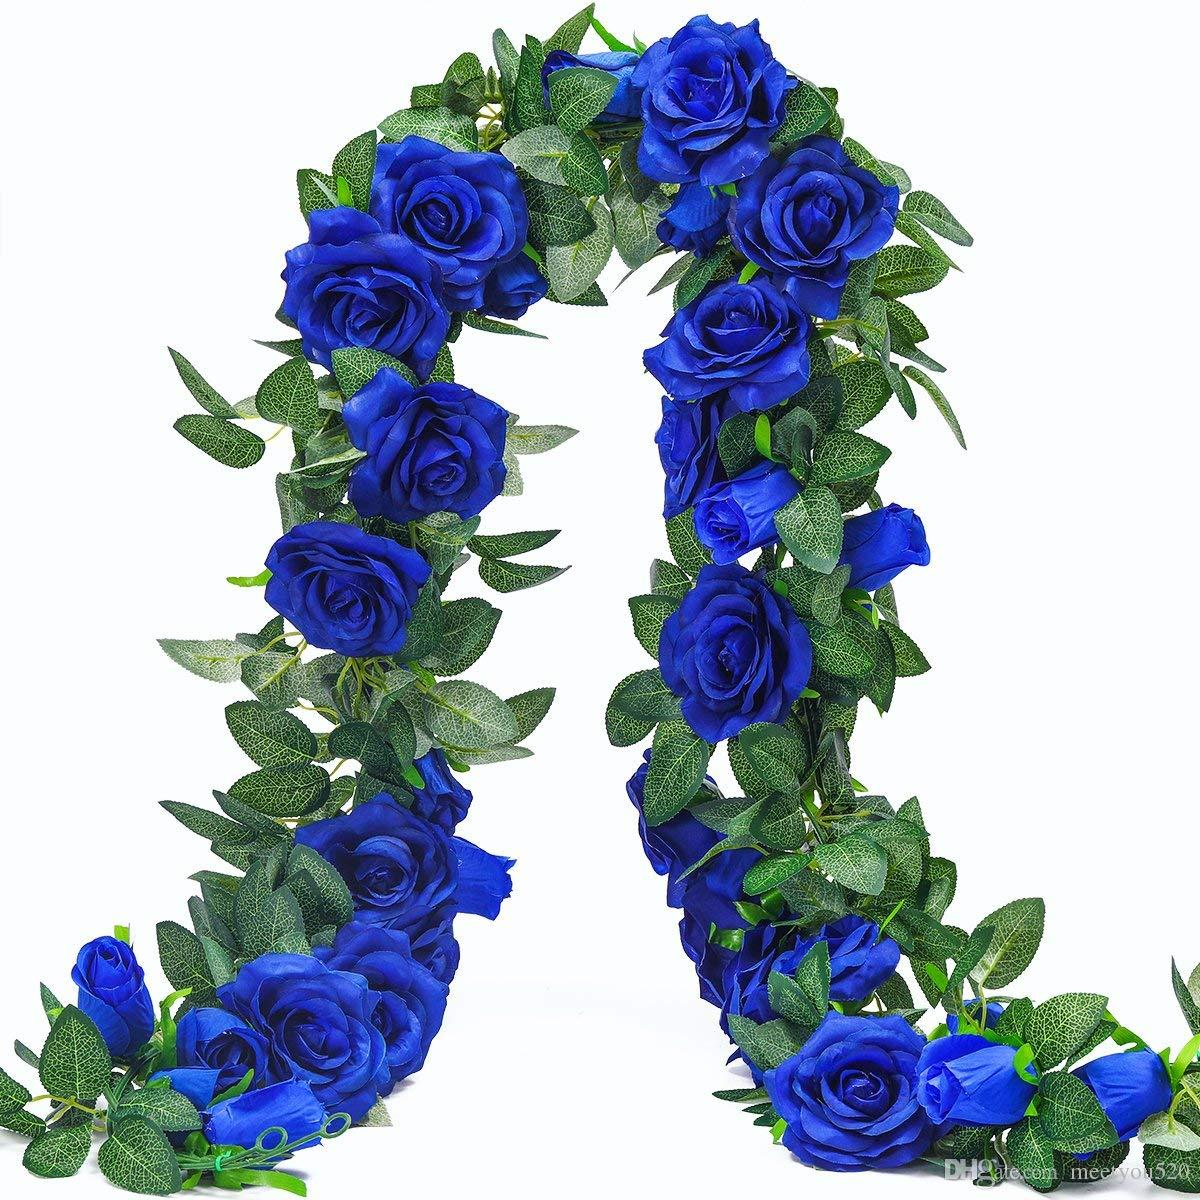 65ft artificial rose vine silk flower garland hanging baskets 65ft artificial rose vine silk flower garland hanging baskets plants home outdoor wedding arch garden wall decorpack of 2 royal blue artificial flowers izmirmasajfo